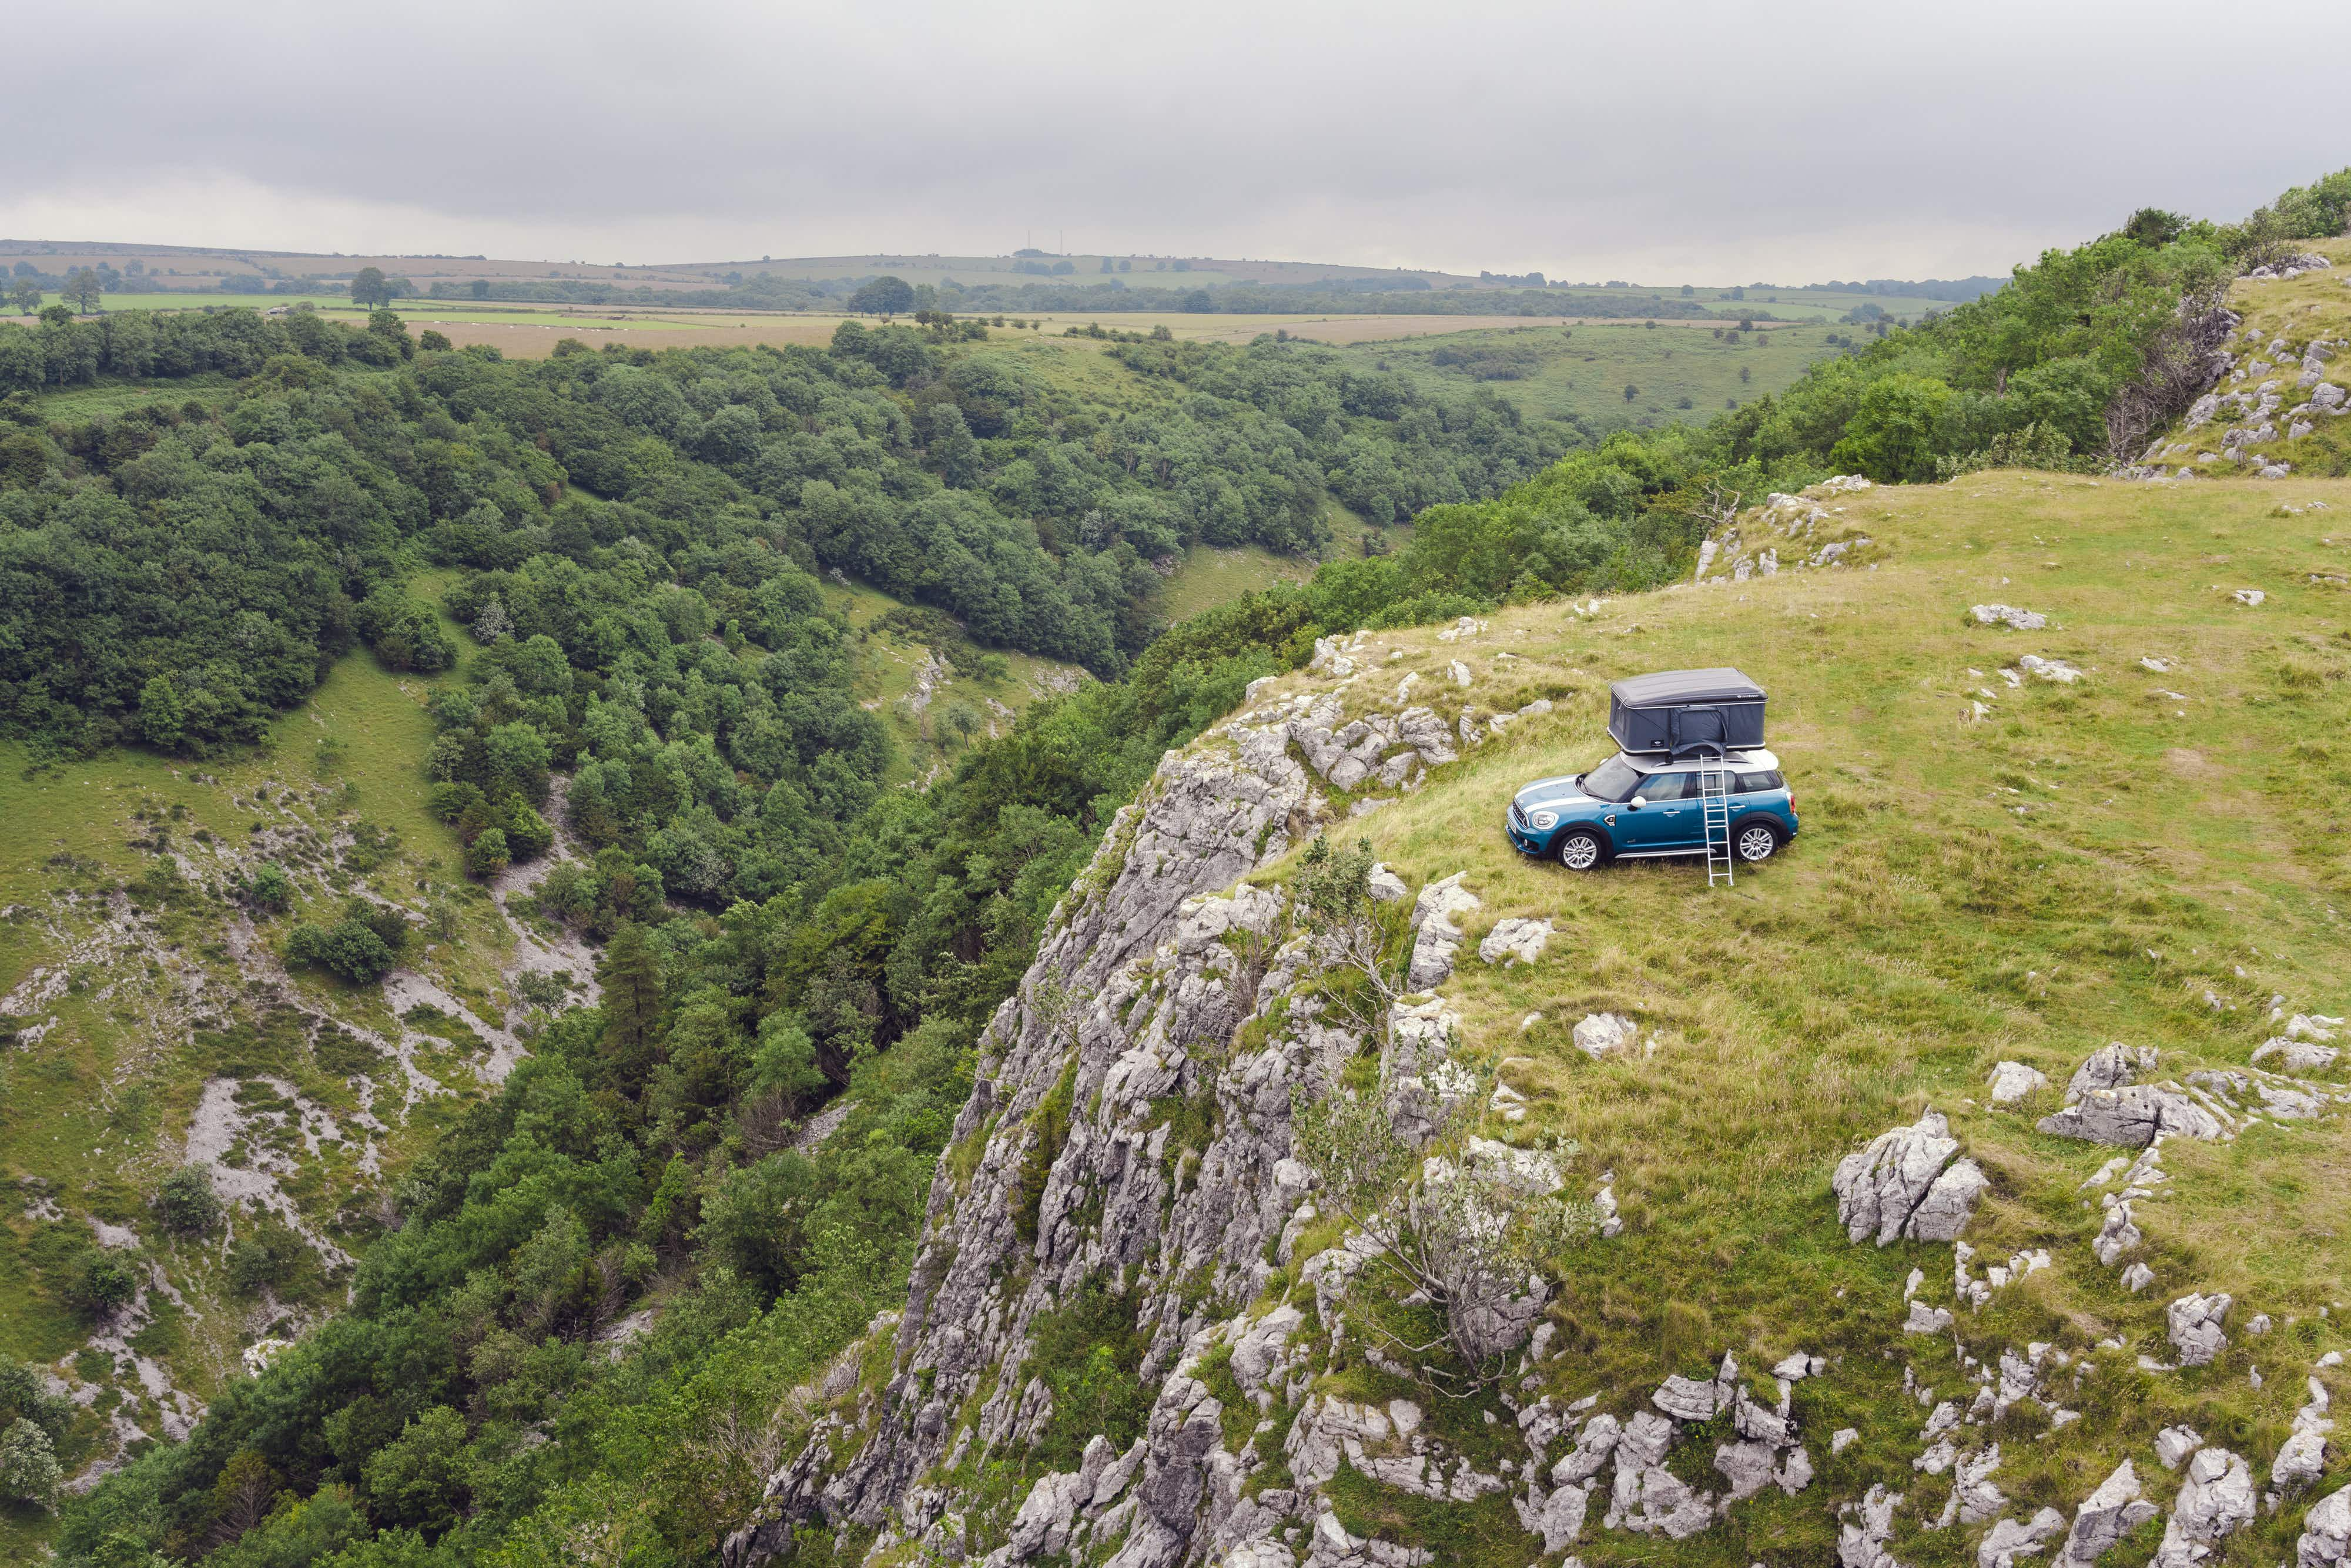 Win a car rooftop tent stay at a place of outstanding natural beauty in the UK